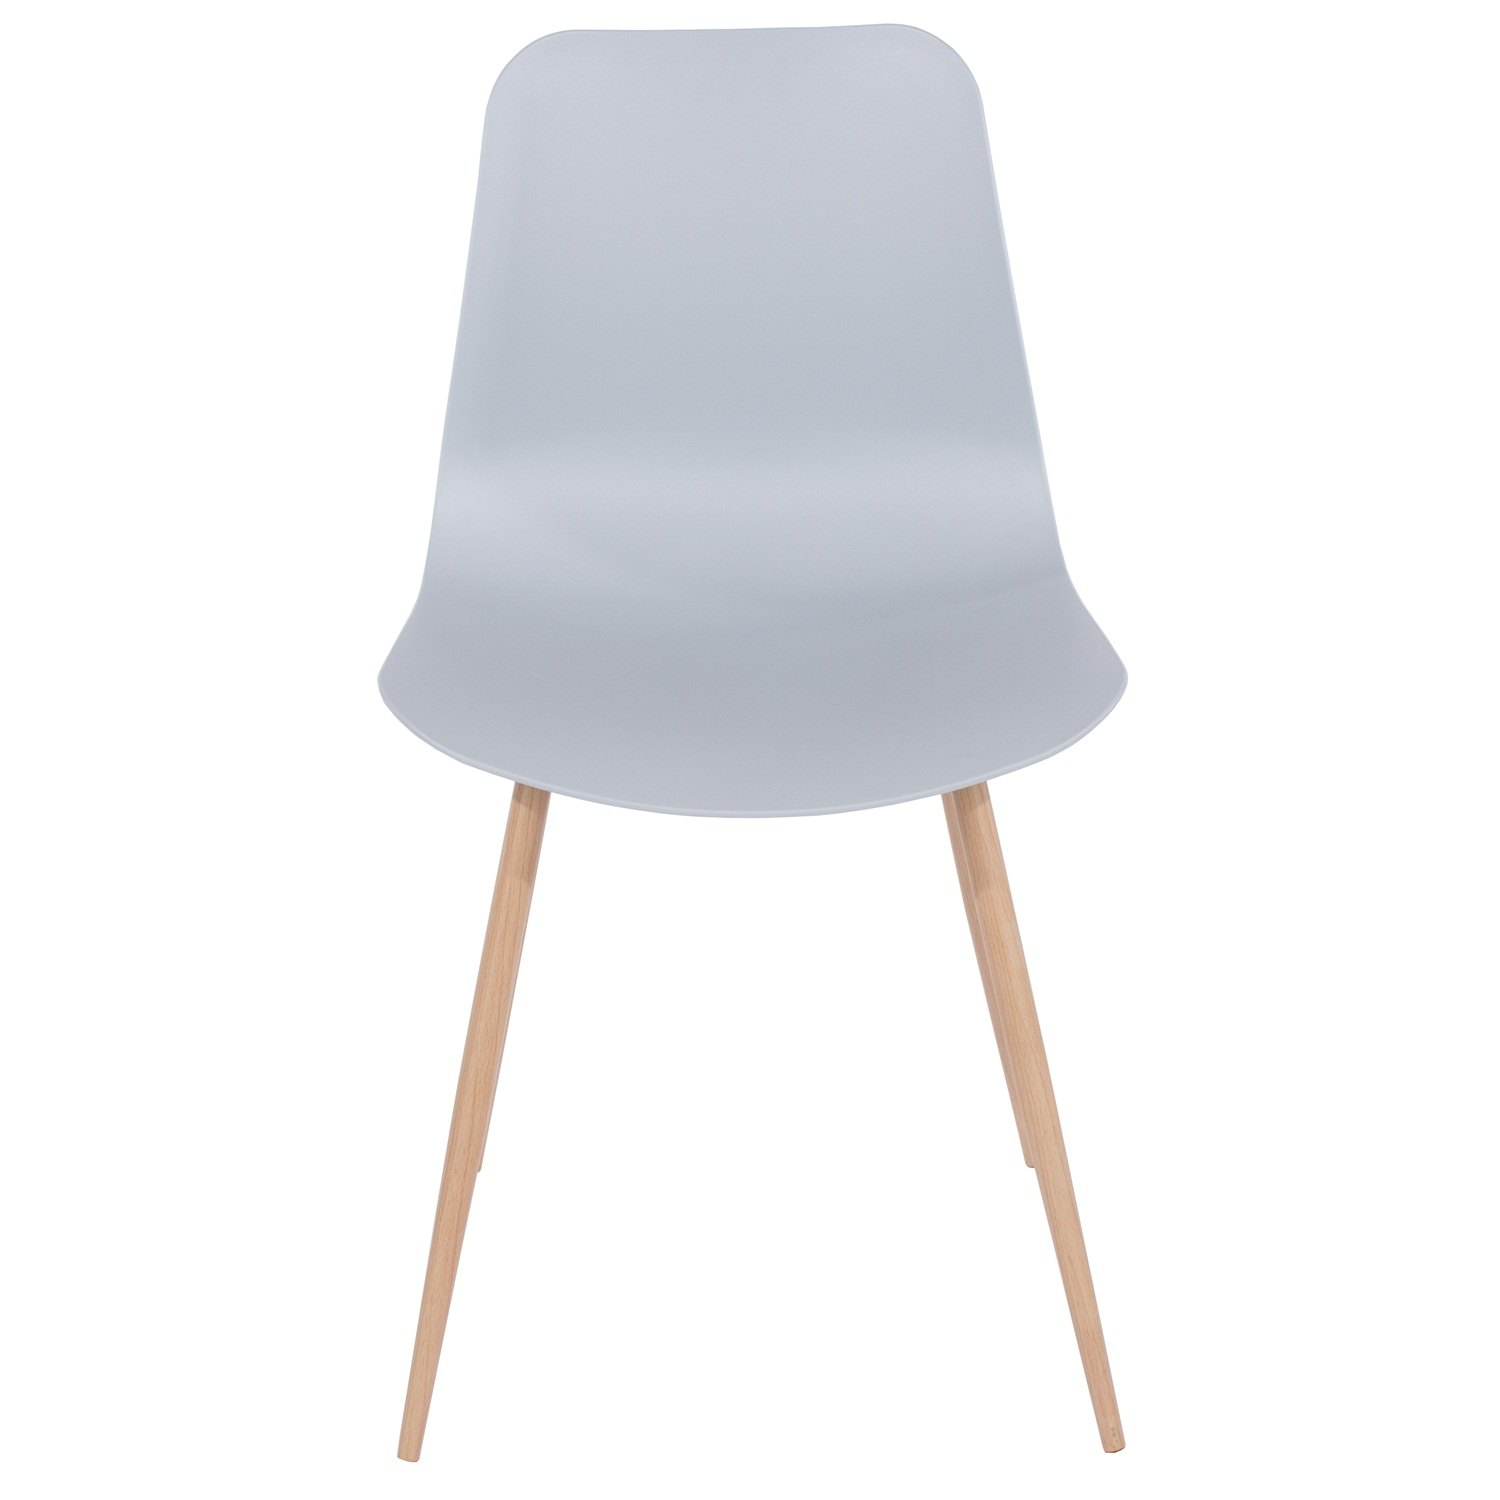 grey plastic chair, wood effect metal legs (order in pairs)